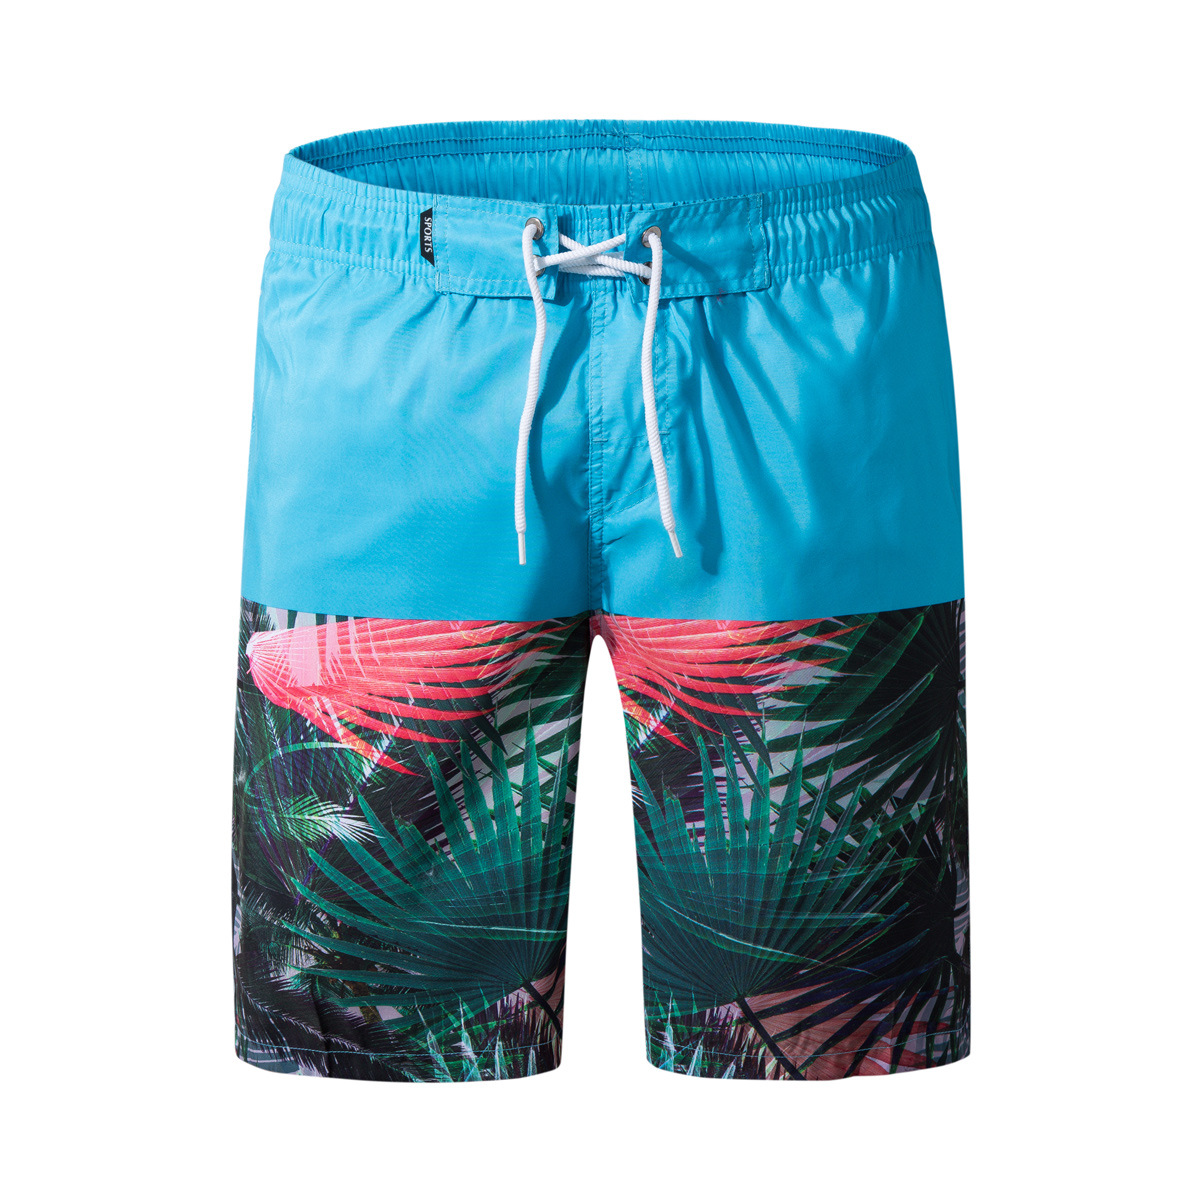 2019 New Summer Brand New Summer Board Shorts Trousers Camouflage Running Pants Male Swimsuit Swimming Trunks Men Board Shorts